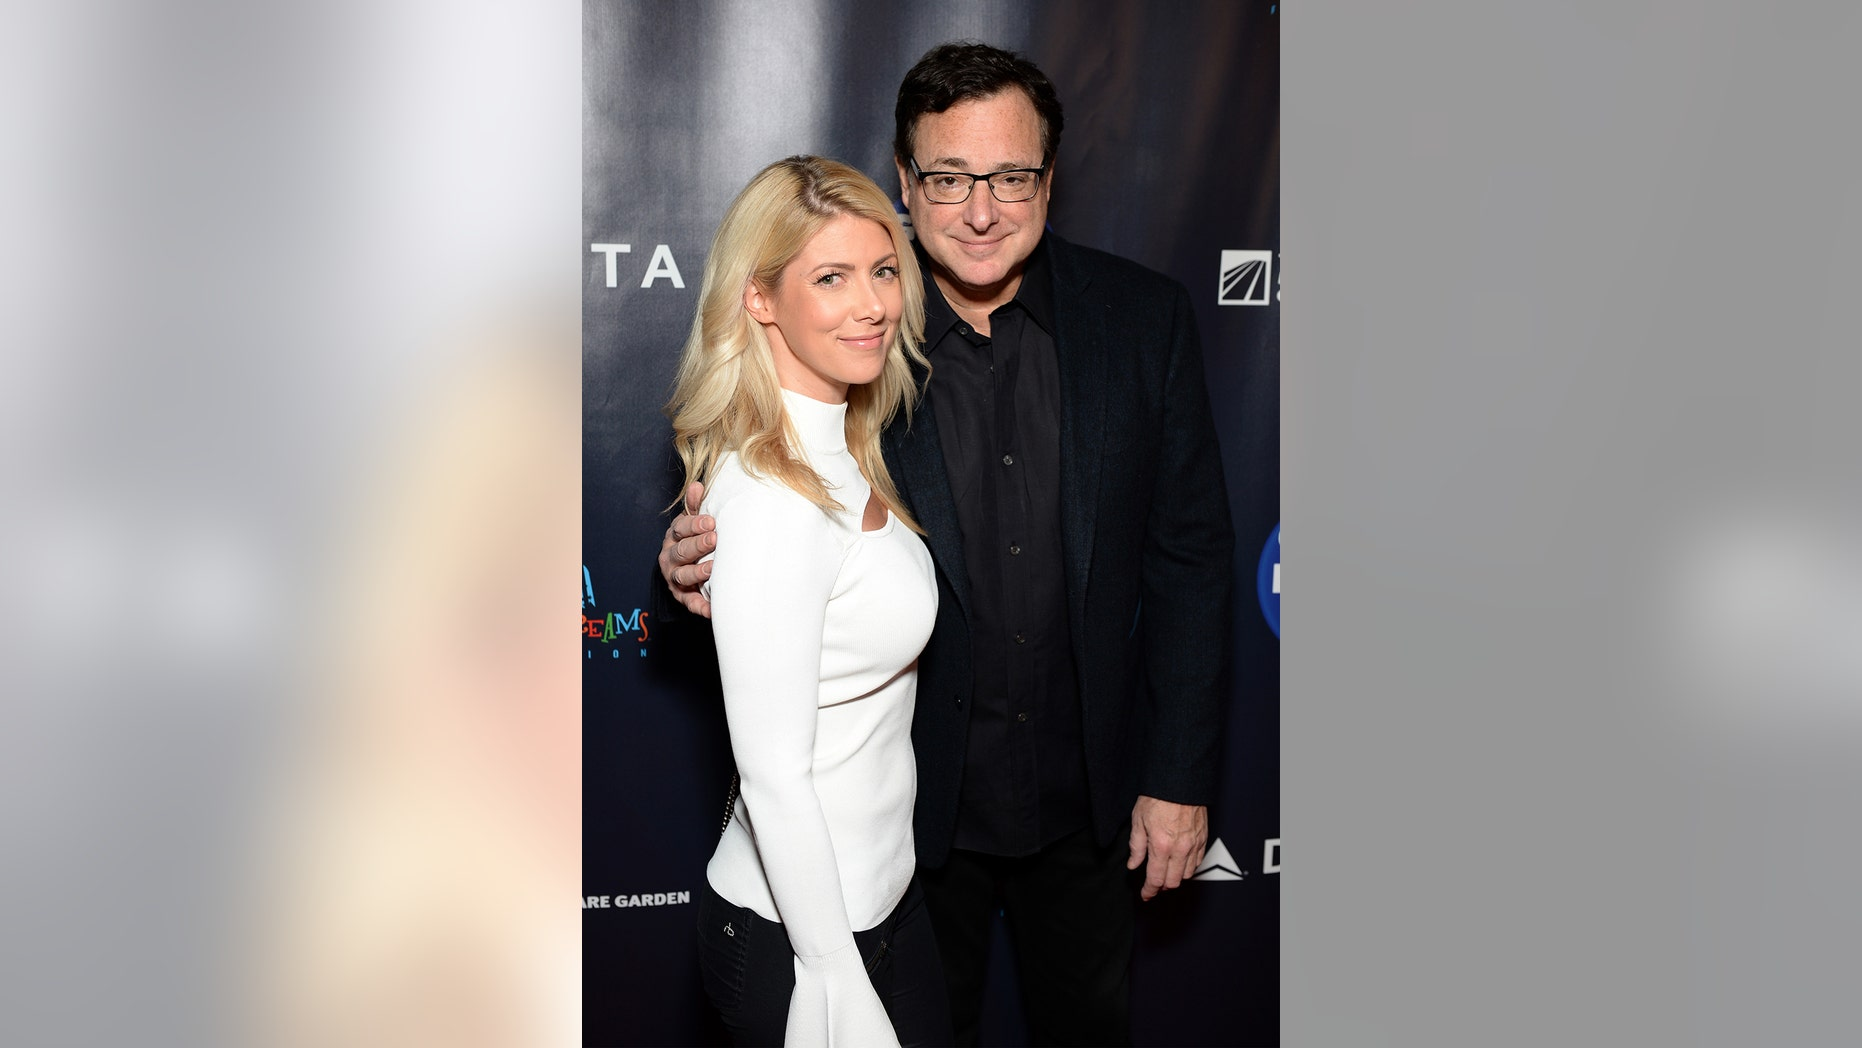 Kelly Rizzo and Bob Saget attend the 2017 Garden of Laughs at Madison Square Garden on March 28, 2017 in New York City.